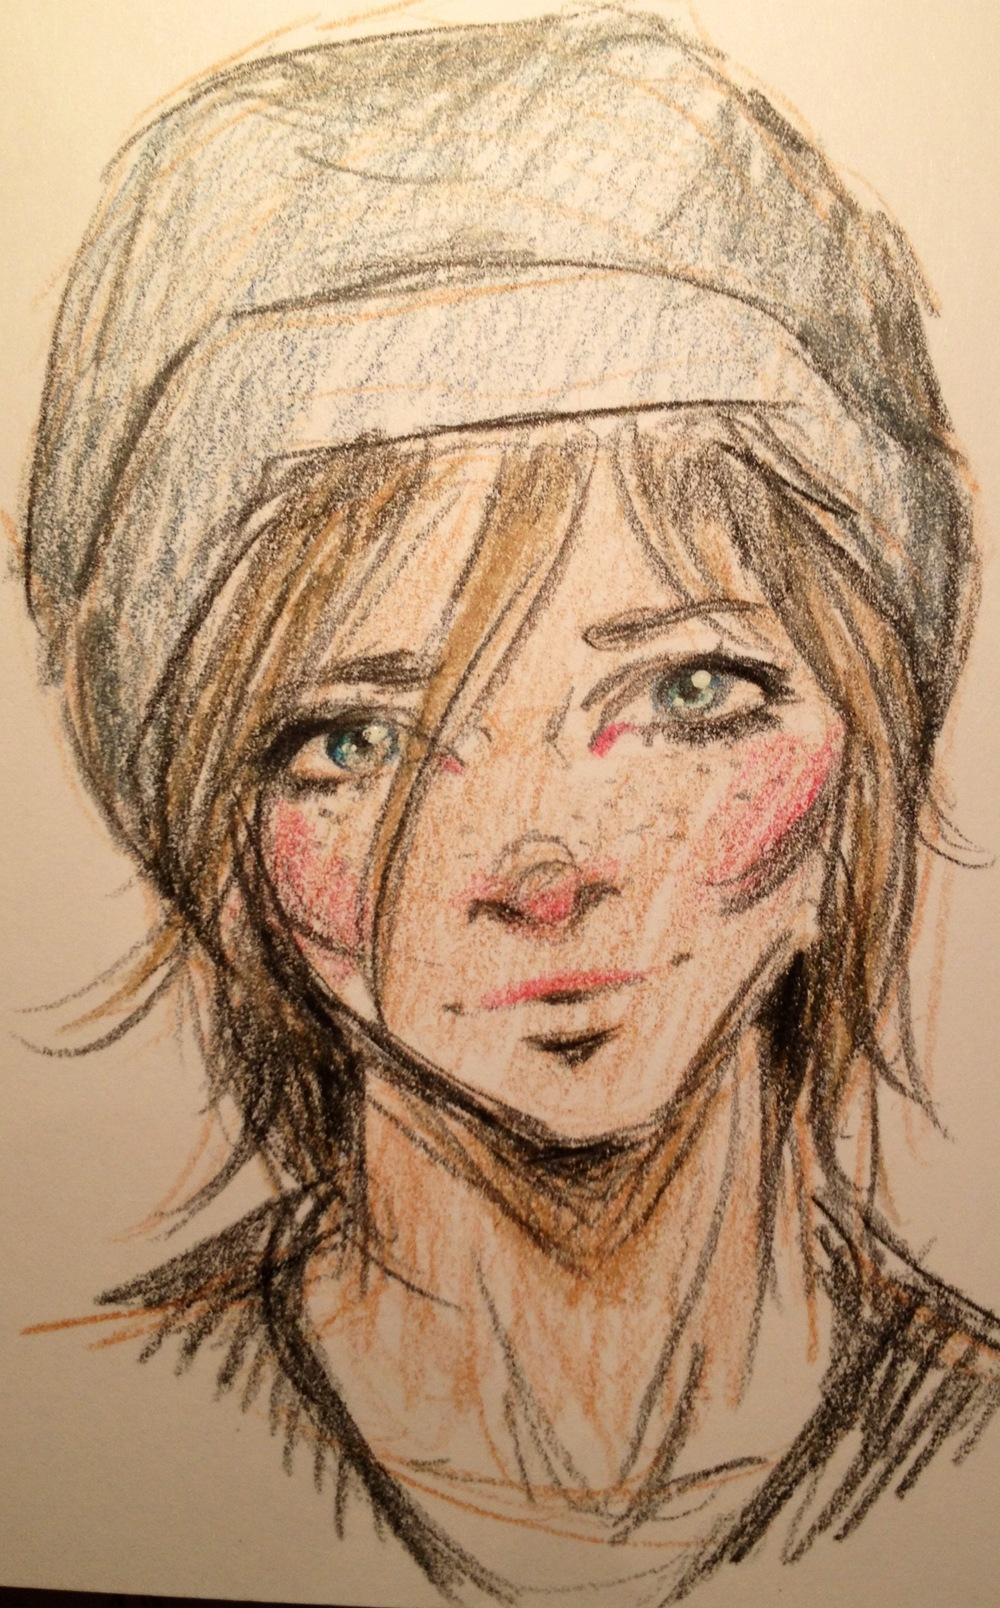 coloured pencil sketch 2.jpg